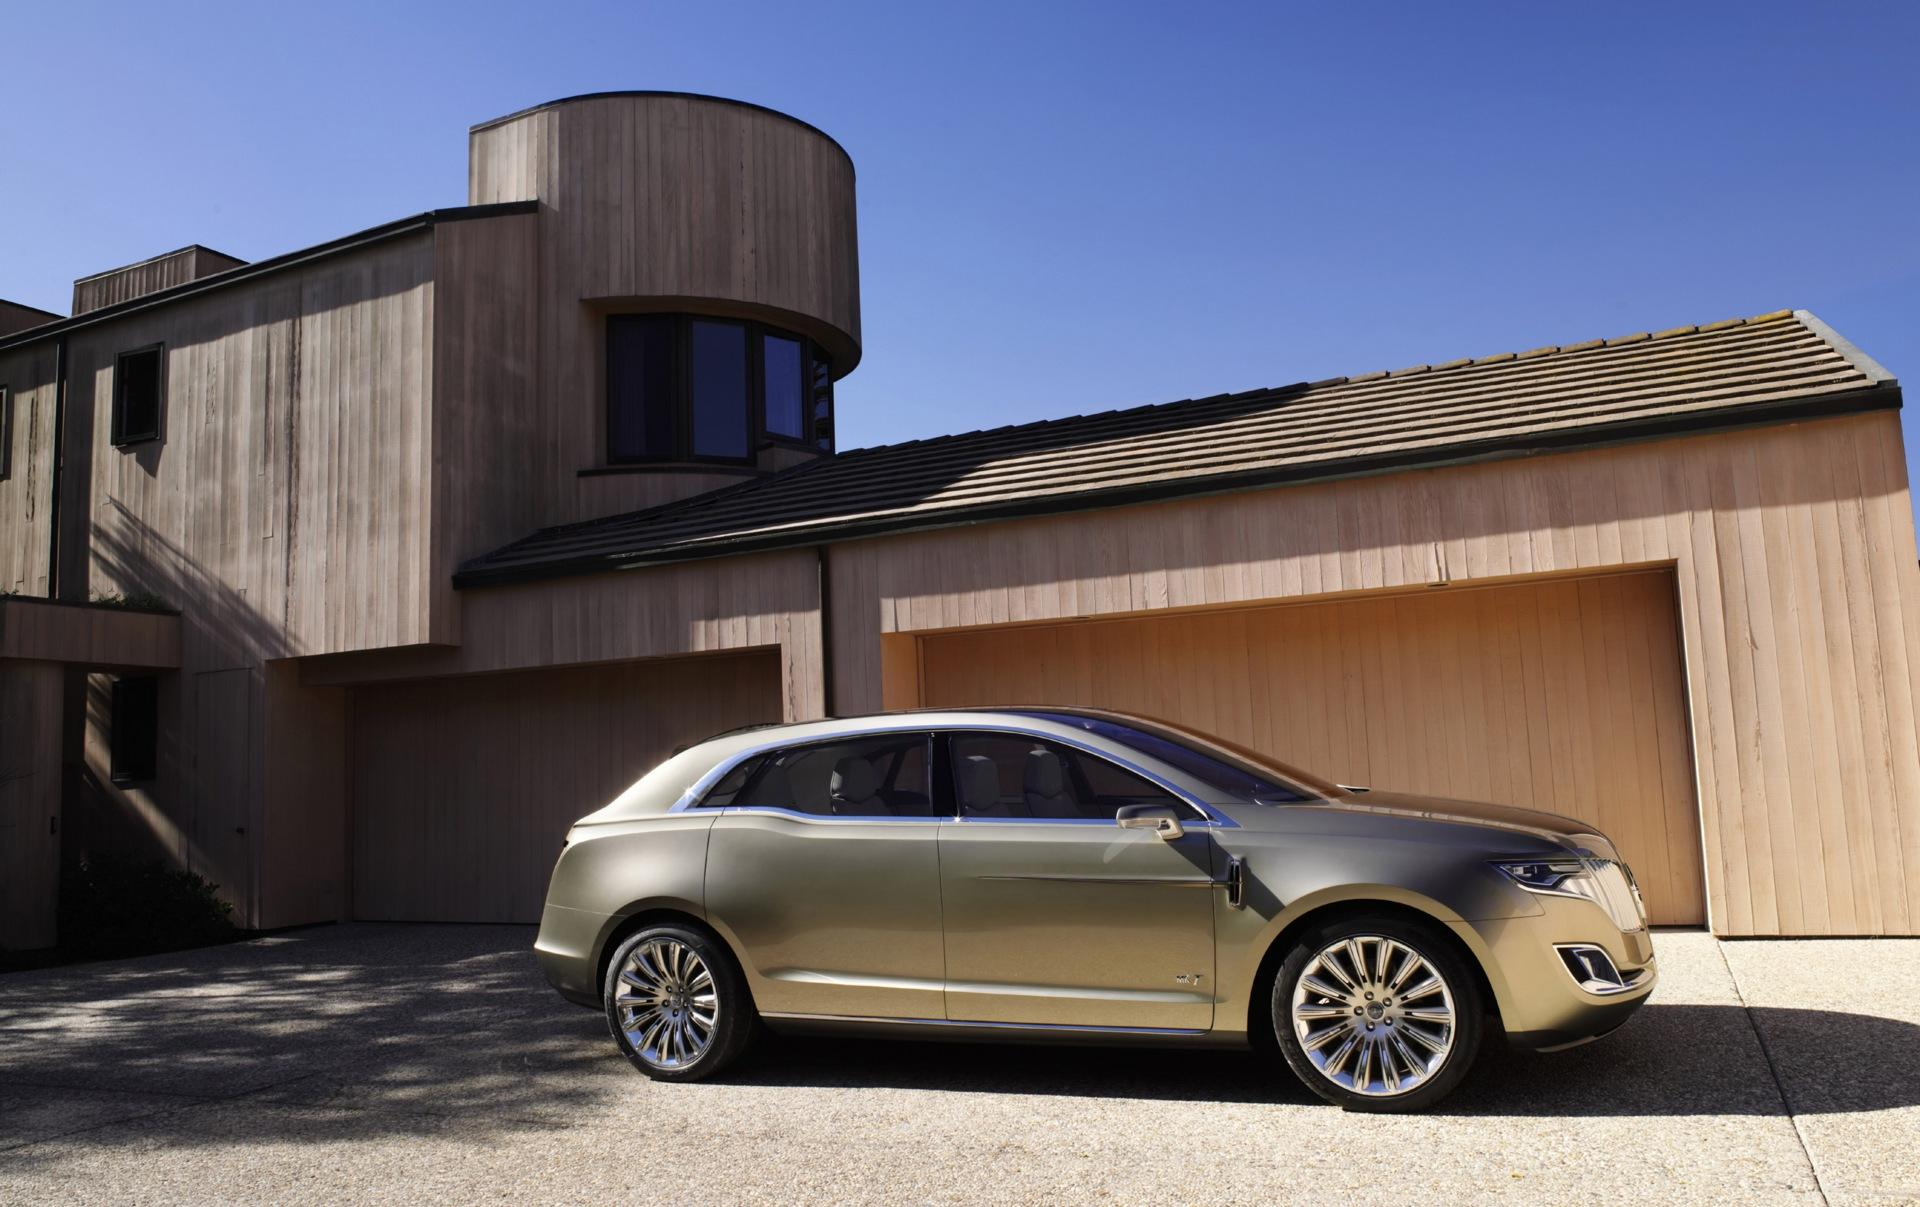 2008 Lincoln MKT Concept News and Information, Research, and History